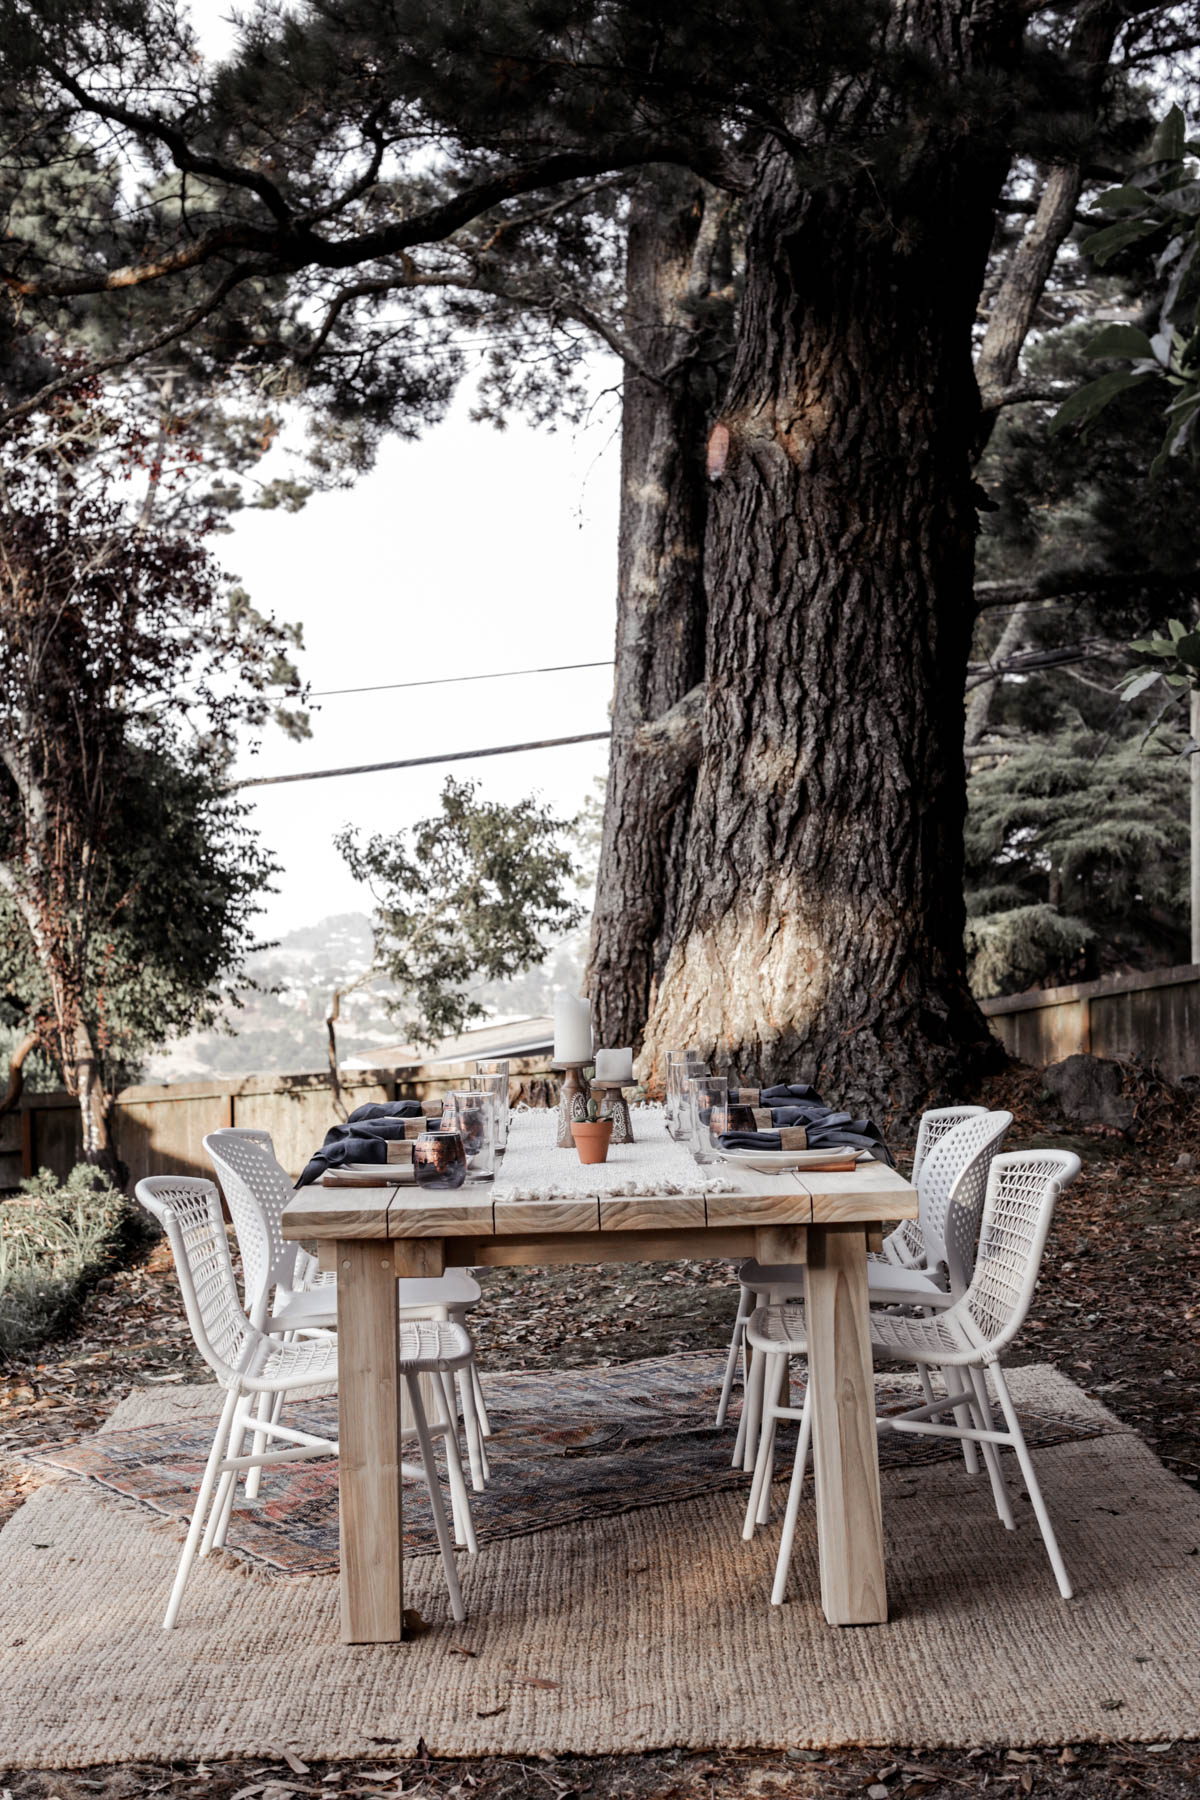 bohemian outdoor dining area with Article table and chairs